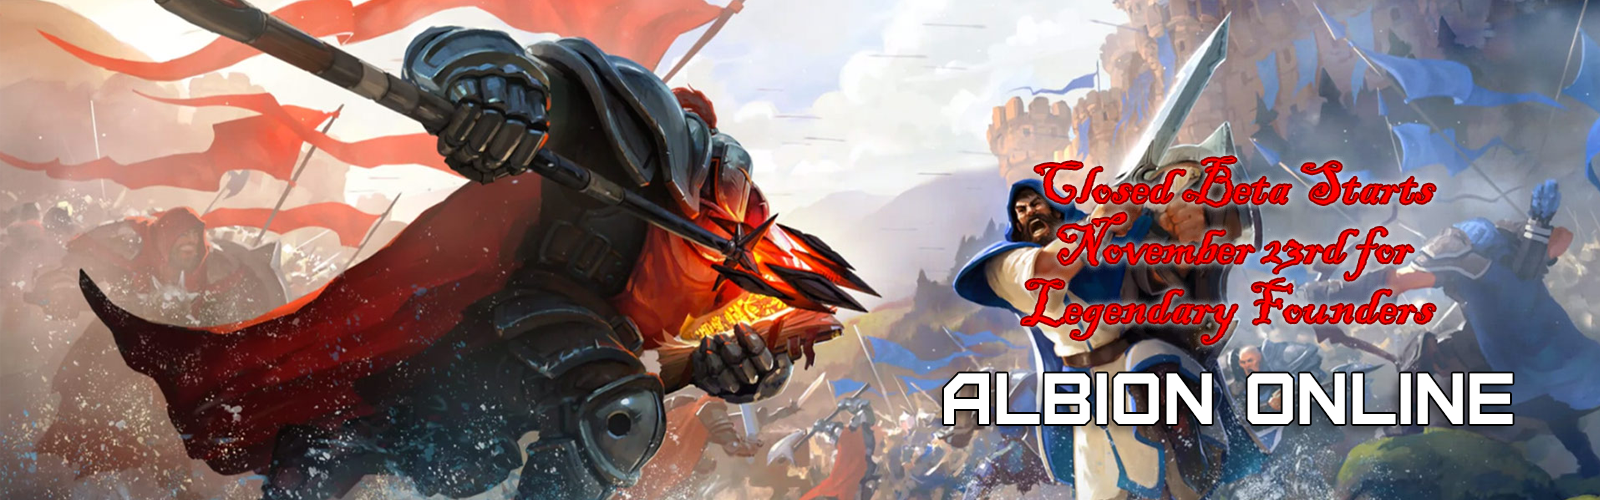 TLP Albion Online Chapter Launches!